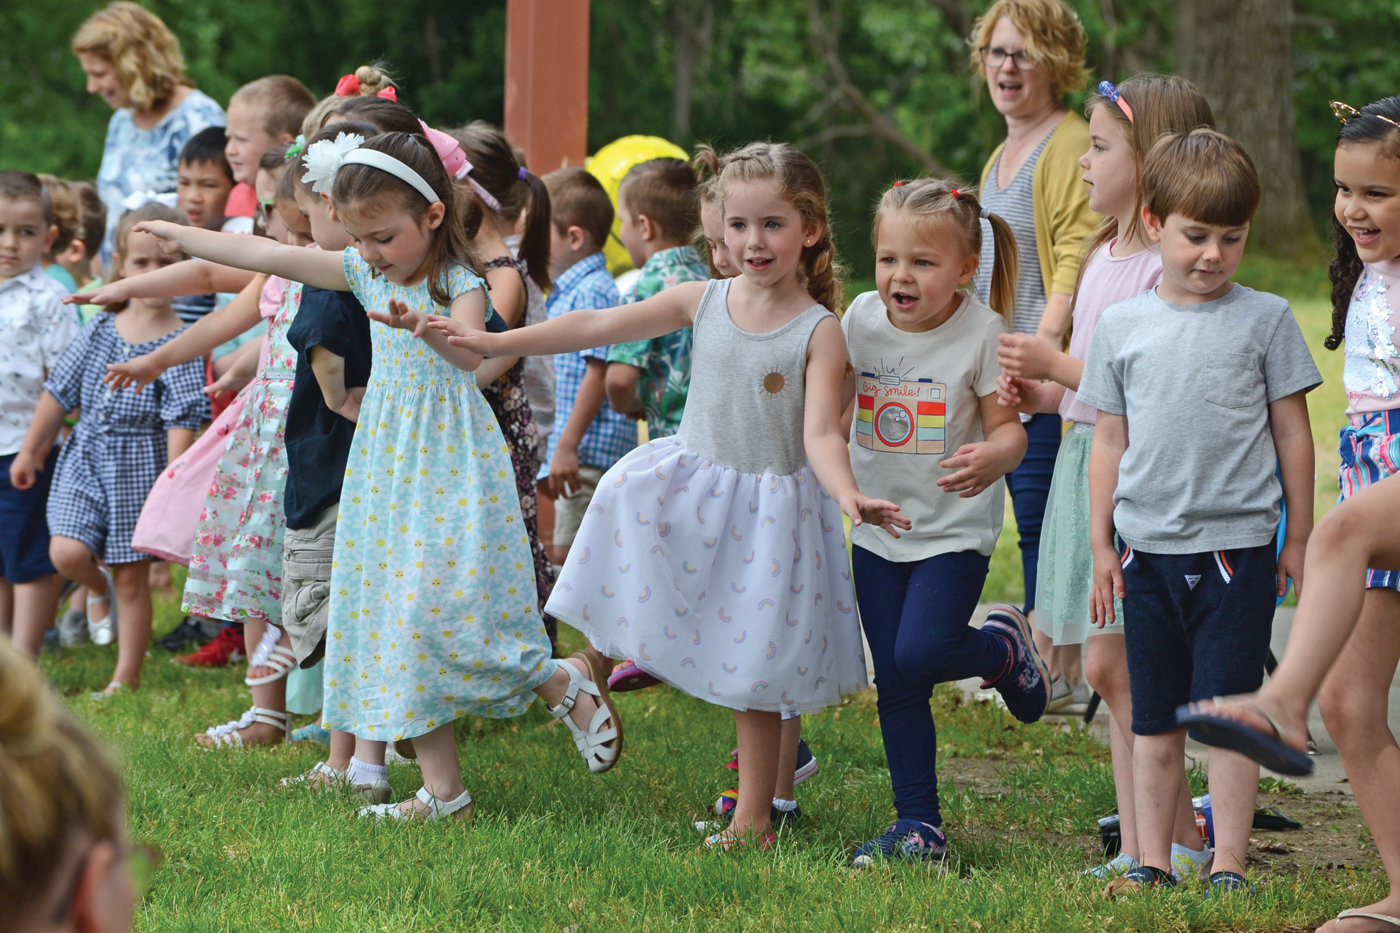 A REASON TO DANCE: Students from the Buttonwoods School had the chance to sing and dance during the school's 40th anniversary celebration on Friday.